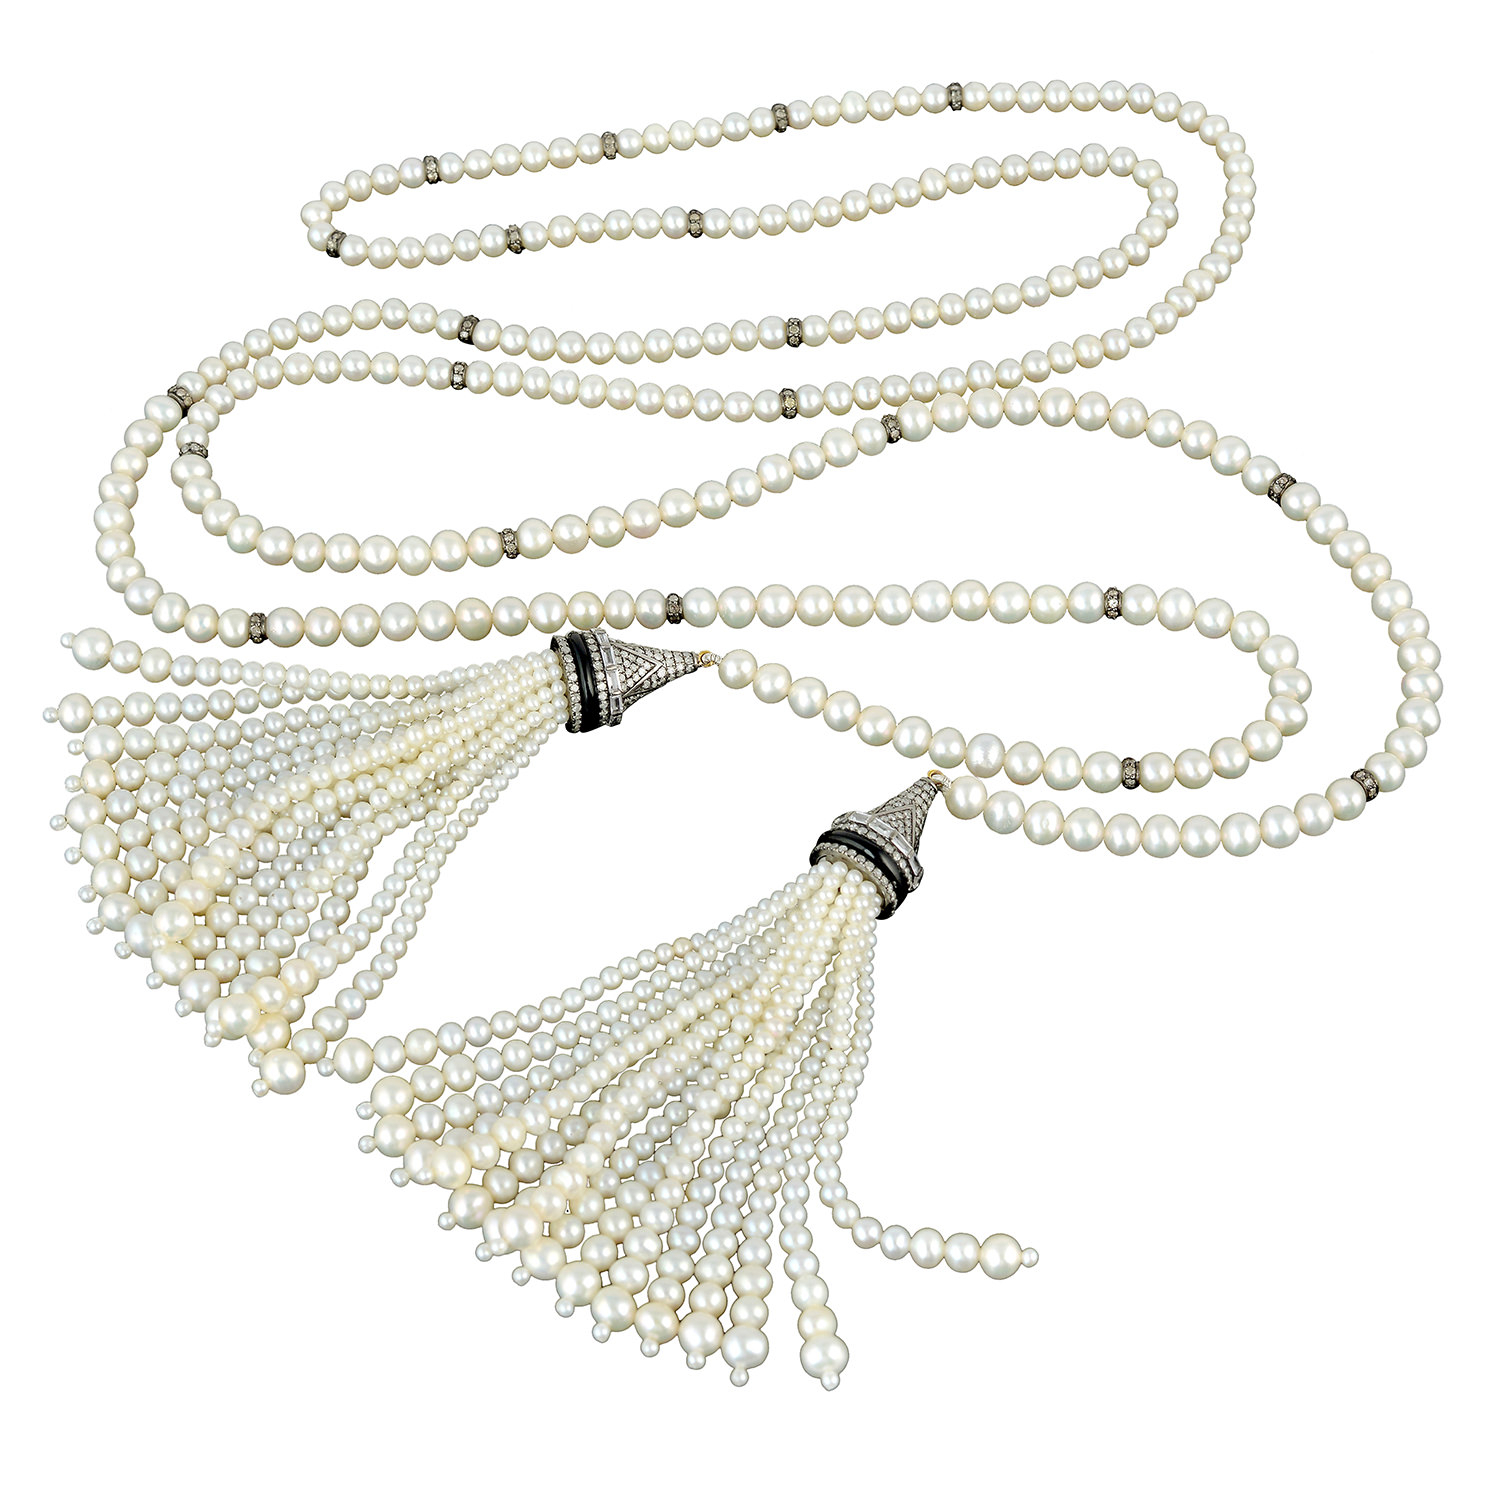 Pave Diamond Onyx Sapphire Pearl Beads Lariat Tassel Necklace 18Kt In Current Beads & Pavé Necklaces (Gallery 8 of 25)